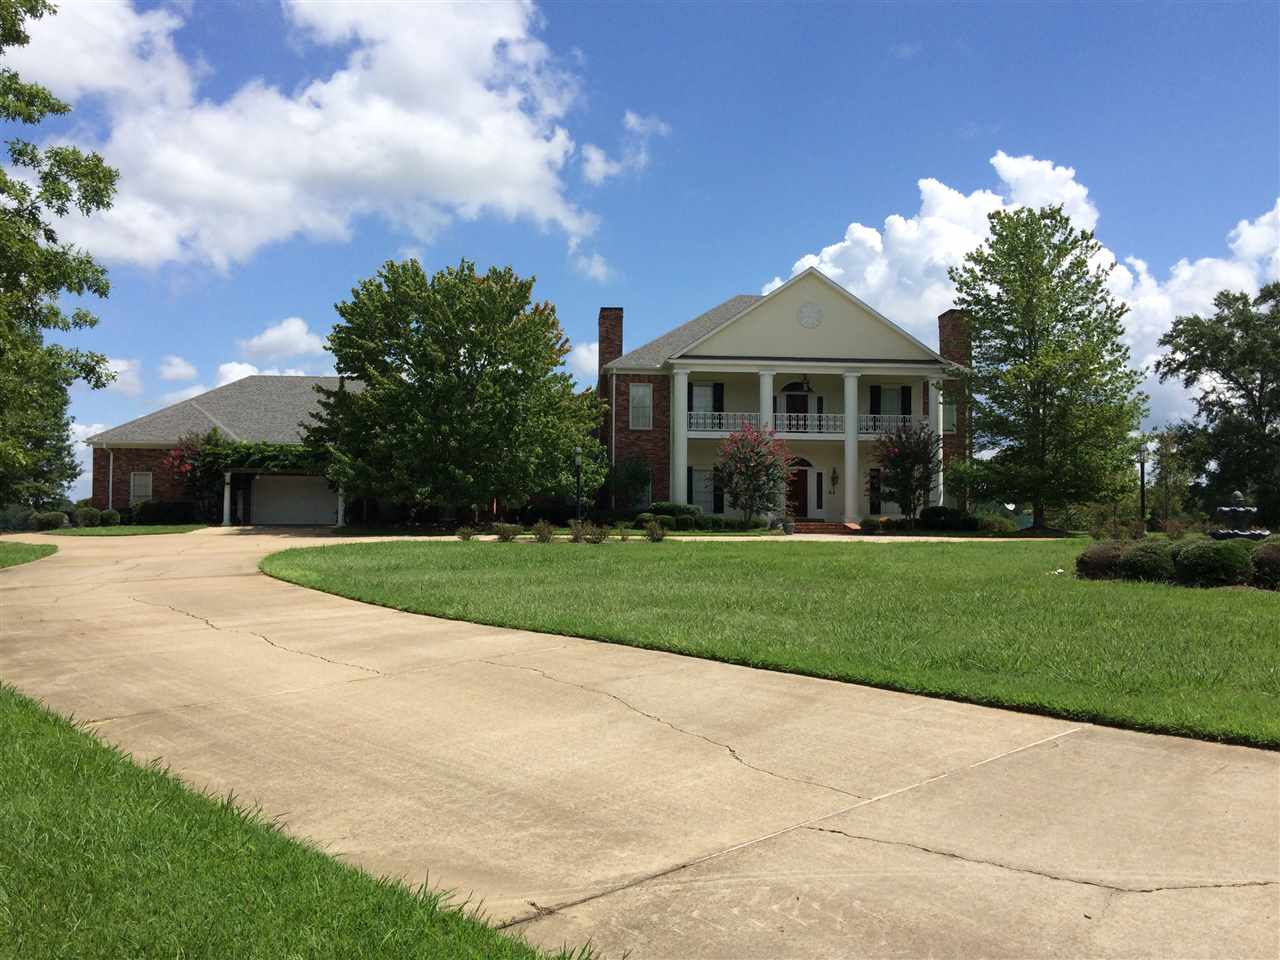 242A HIGHLAND HILLS LN   Flora MS 39071 - Mississippi property for sale